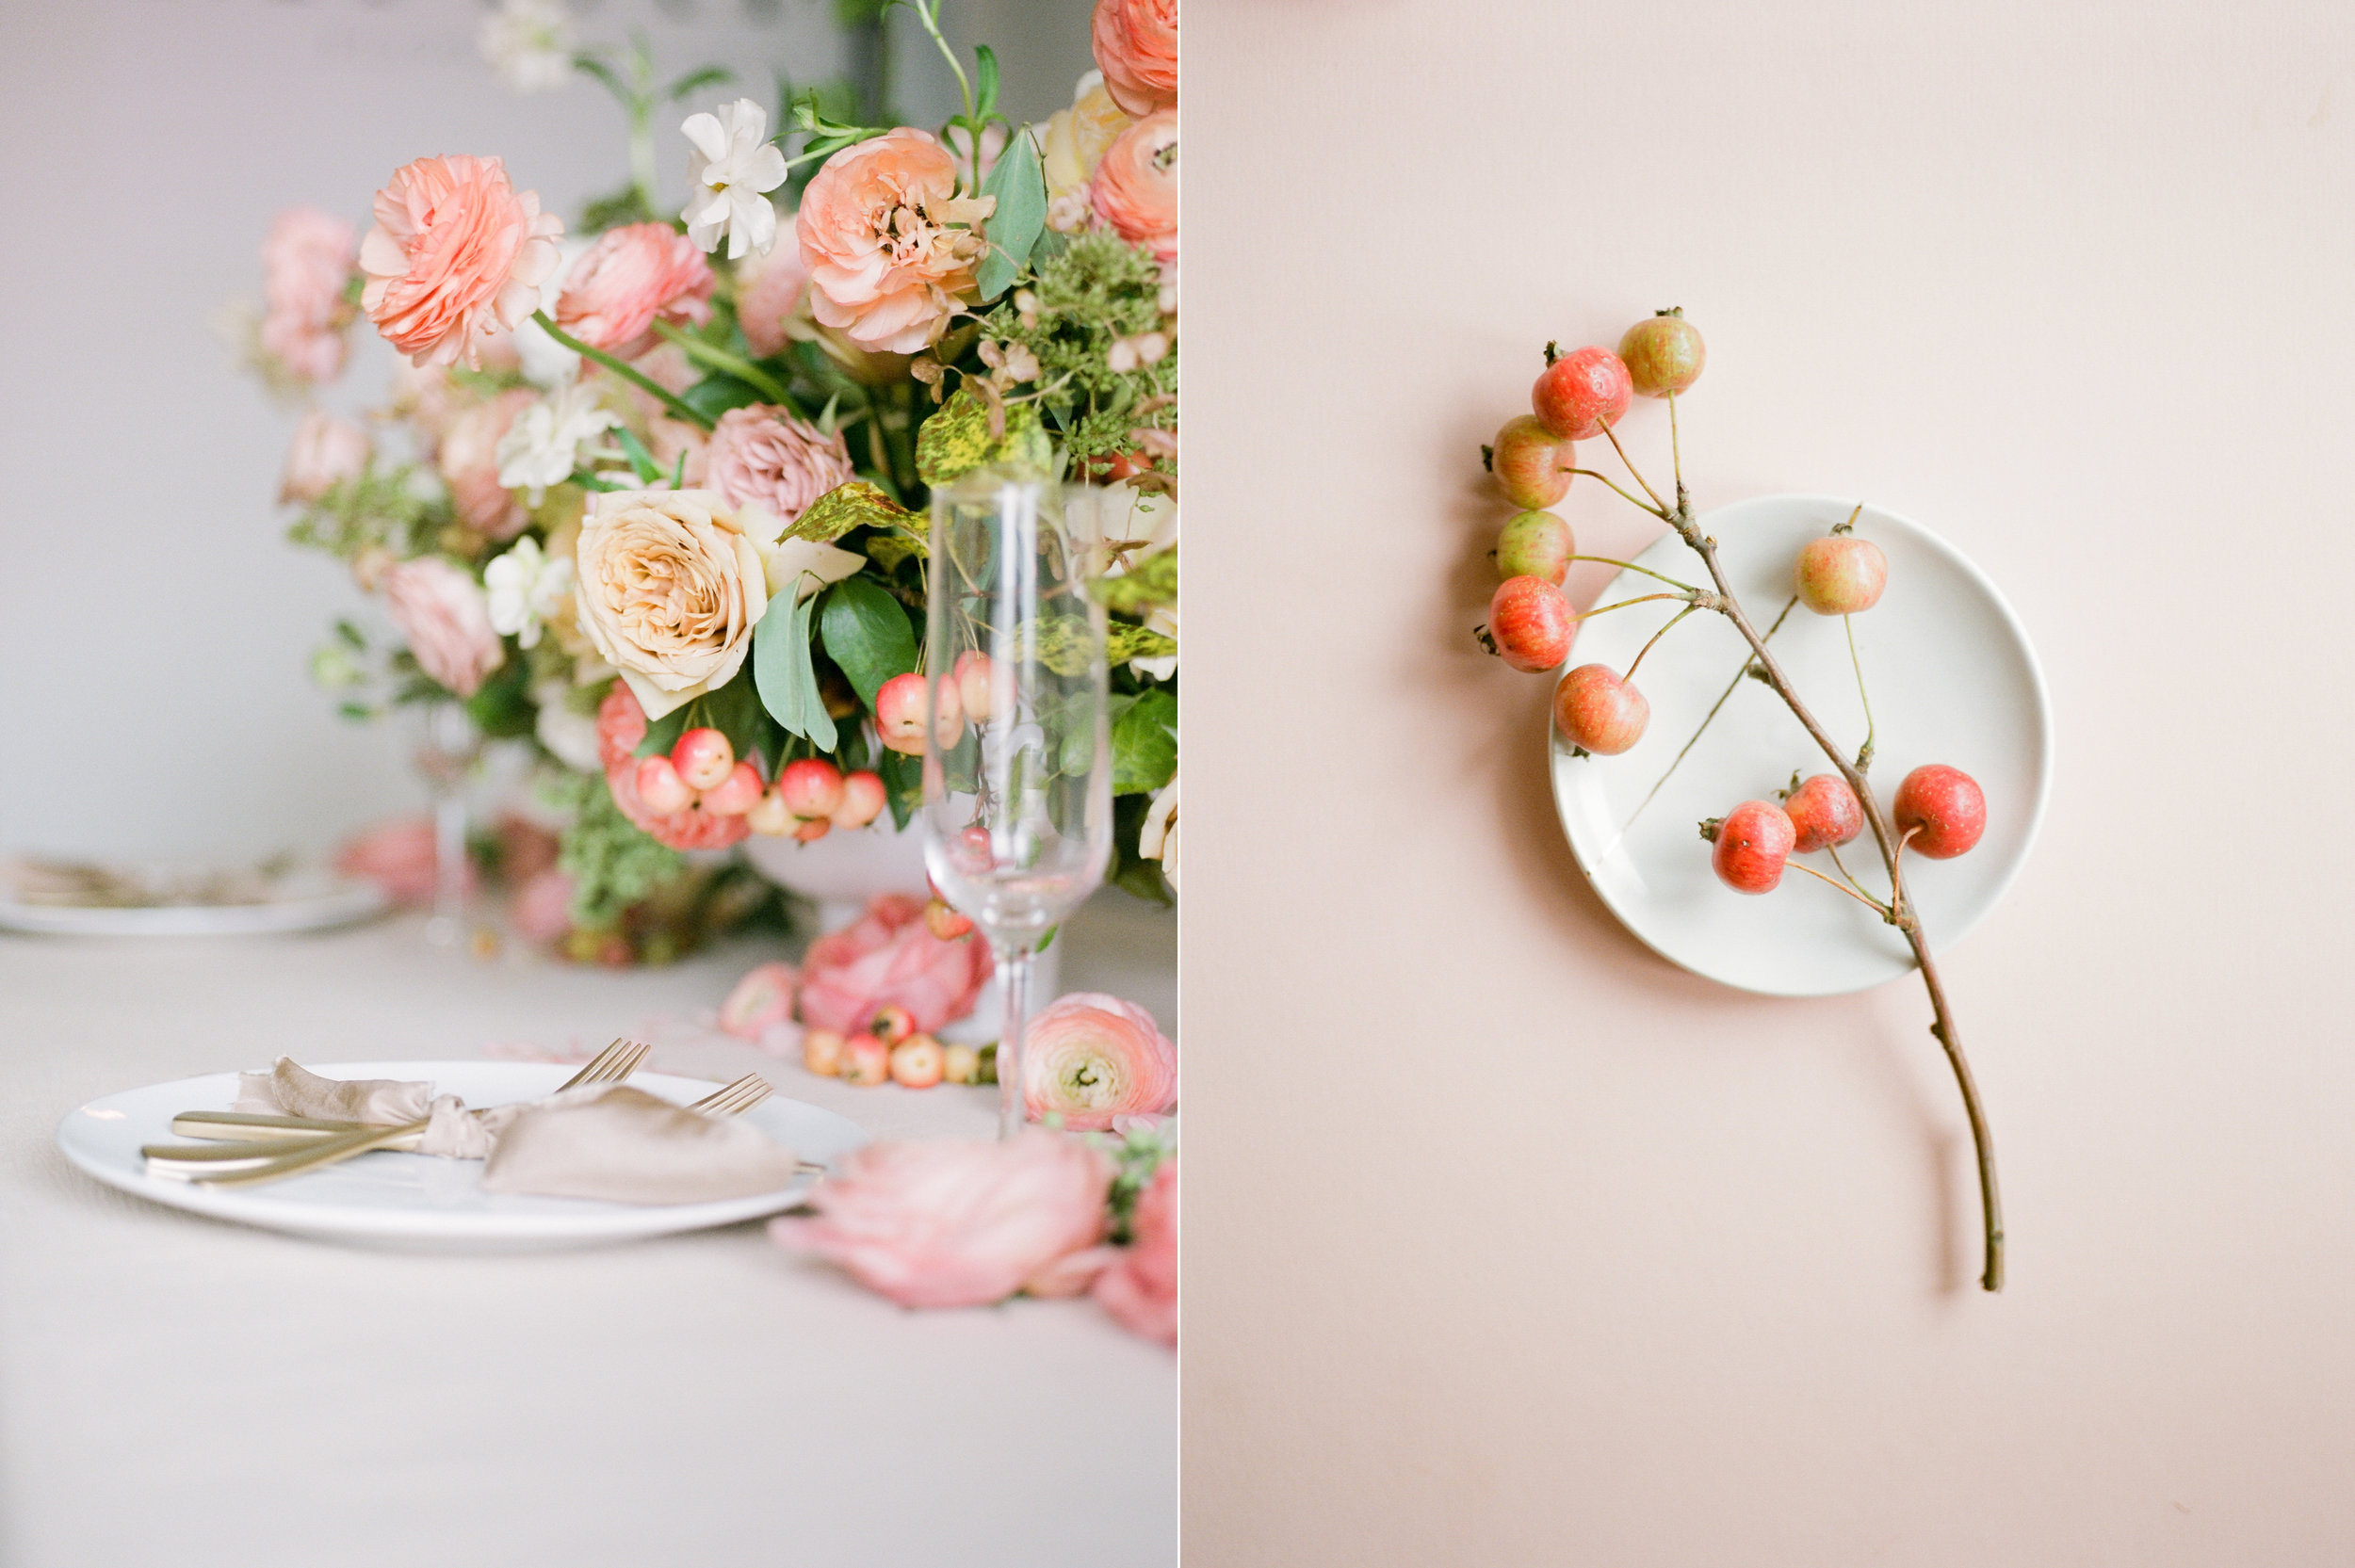 film wedding photographer - Houston wedding photographer - intimate wedding photographer - Christine Gosch - fall wedding inspiration - blush fall wedding - wedding flowers - fall wedding flowers - wedding table inspo-6- Maxit Flower Design.jpg